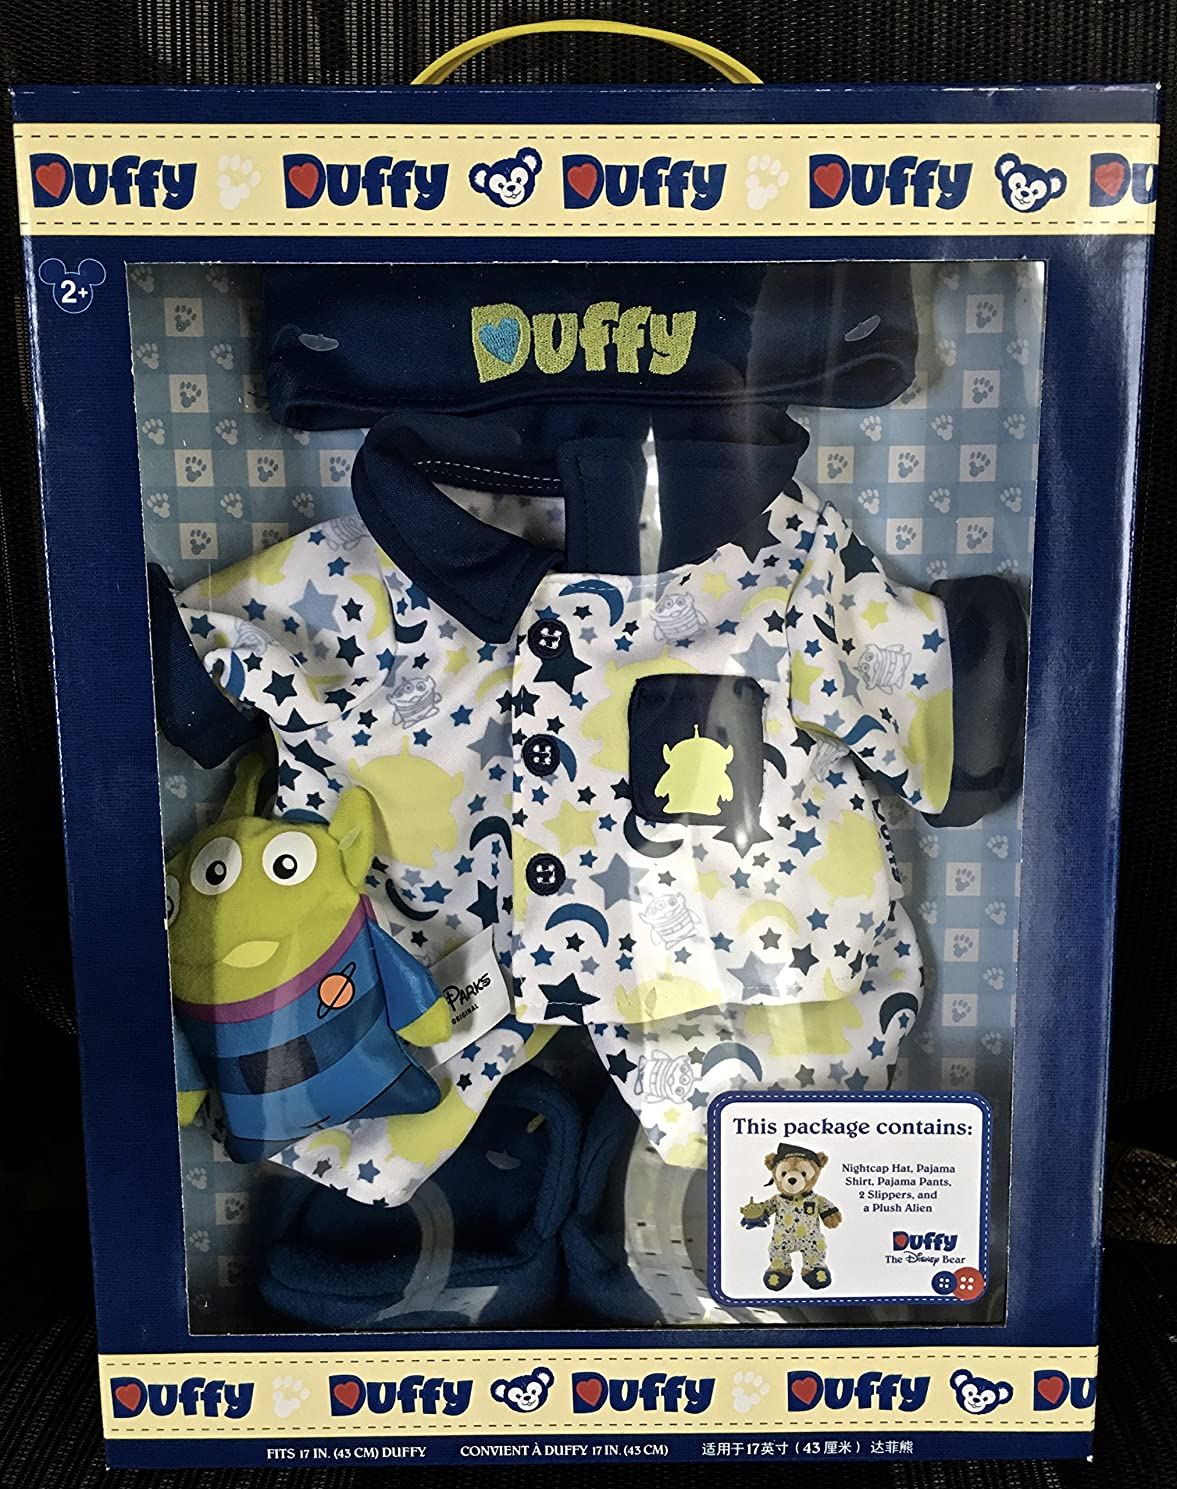 Disney 17 in Duffy Bear Clothes Boxed Set Toy Story Pajamas with Alien Doll NEW qttaklgsyss1647